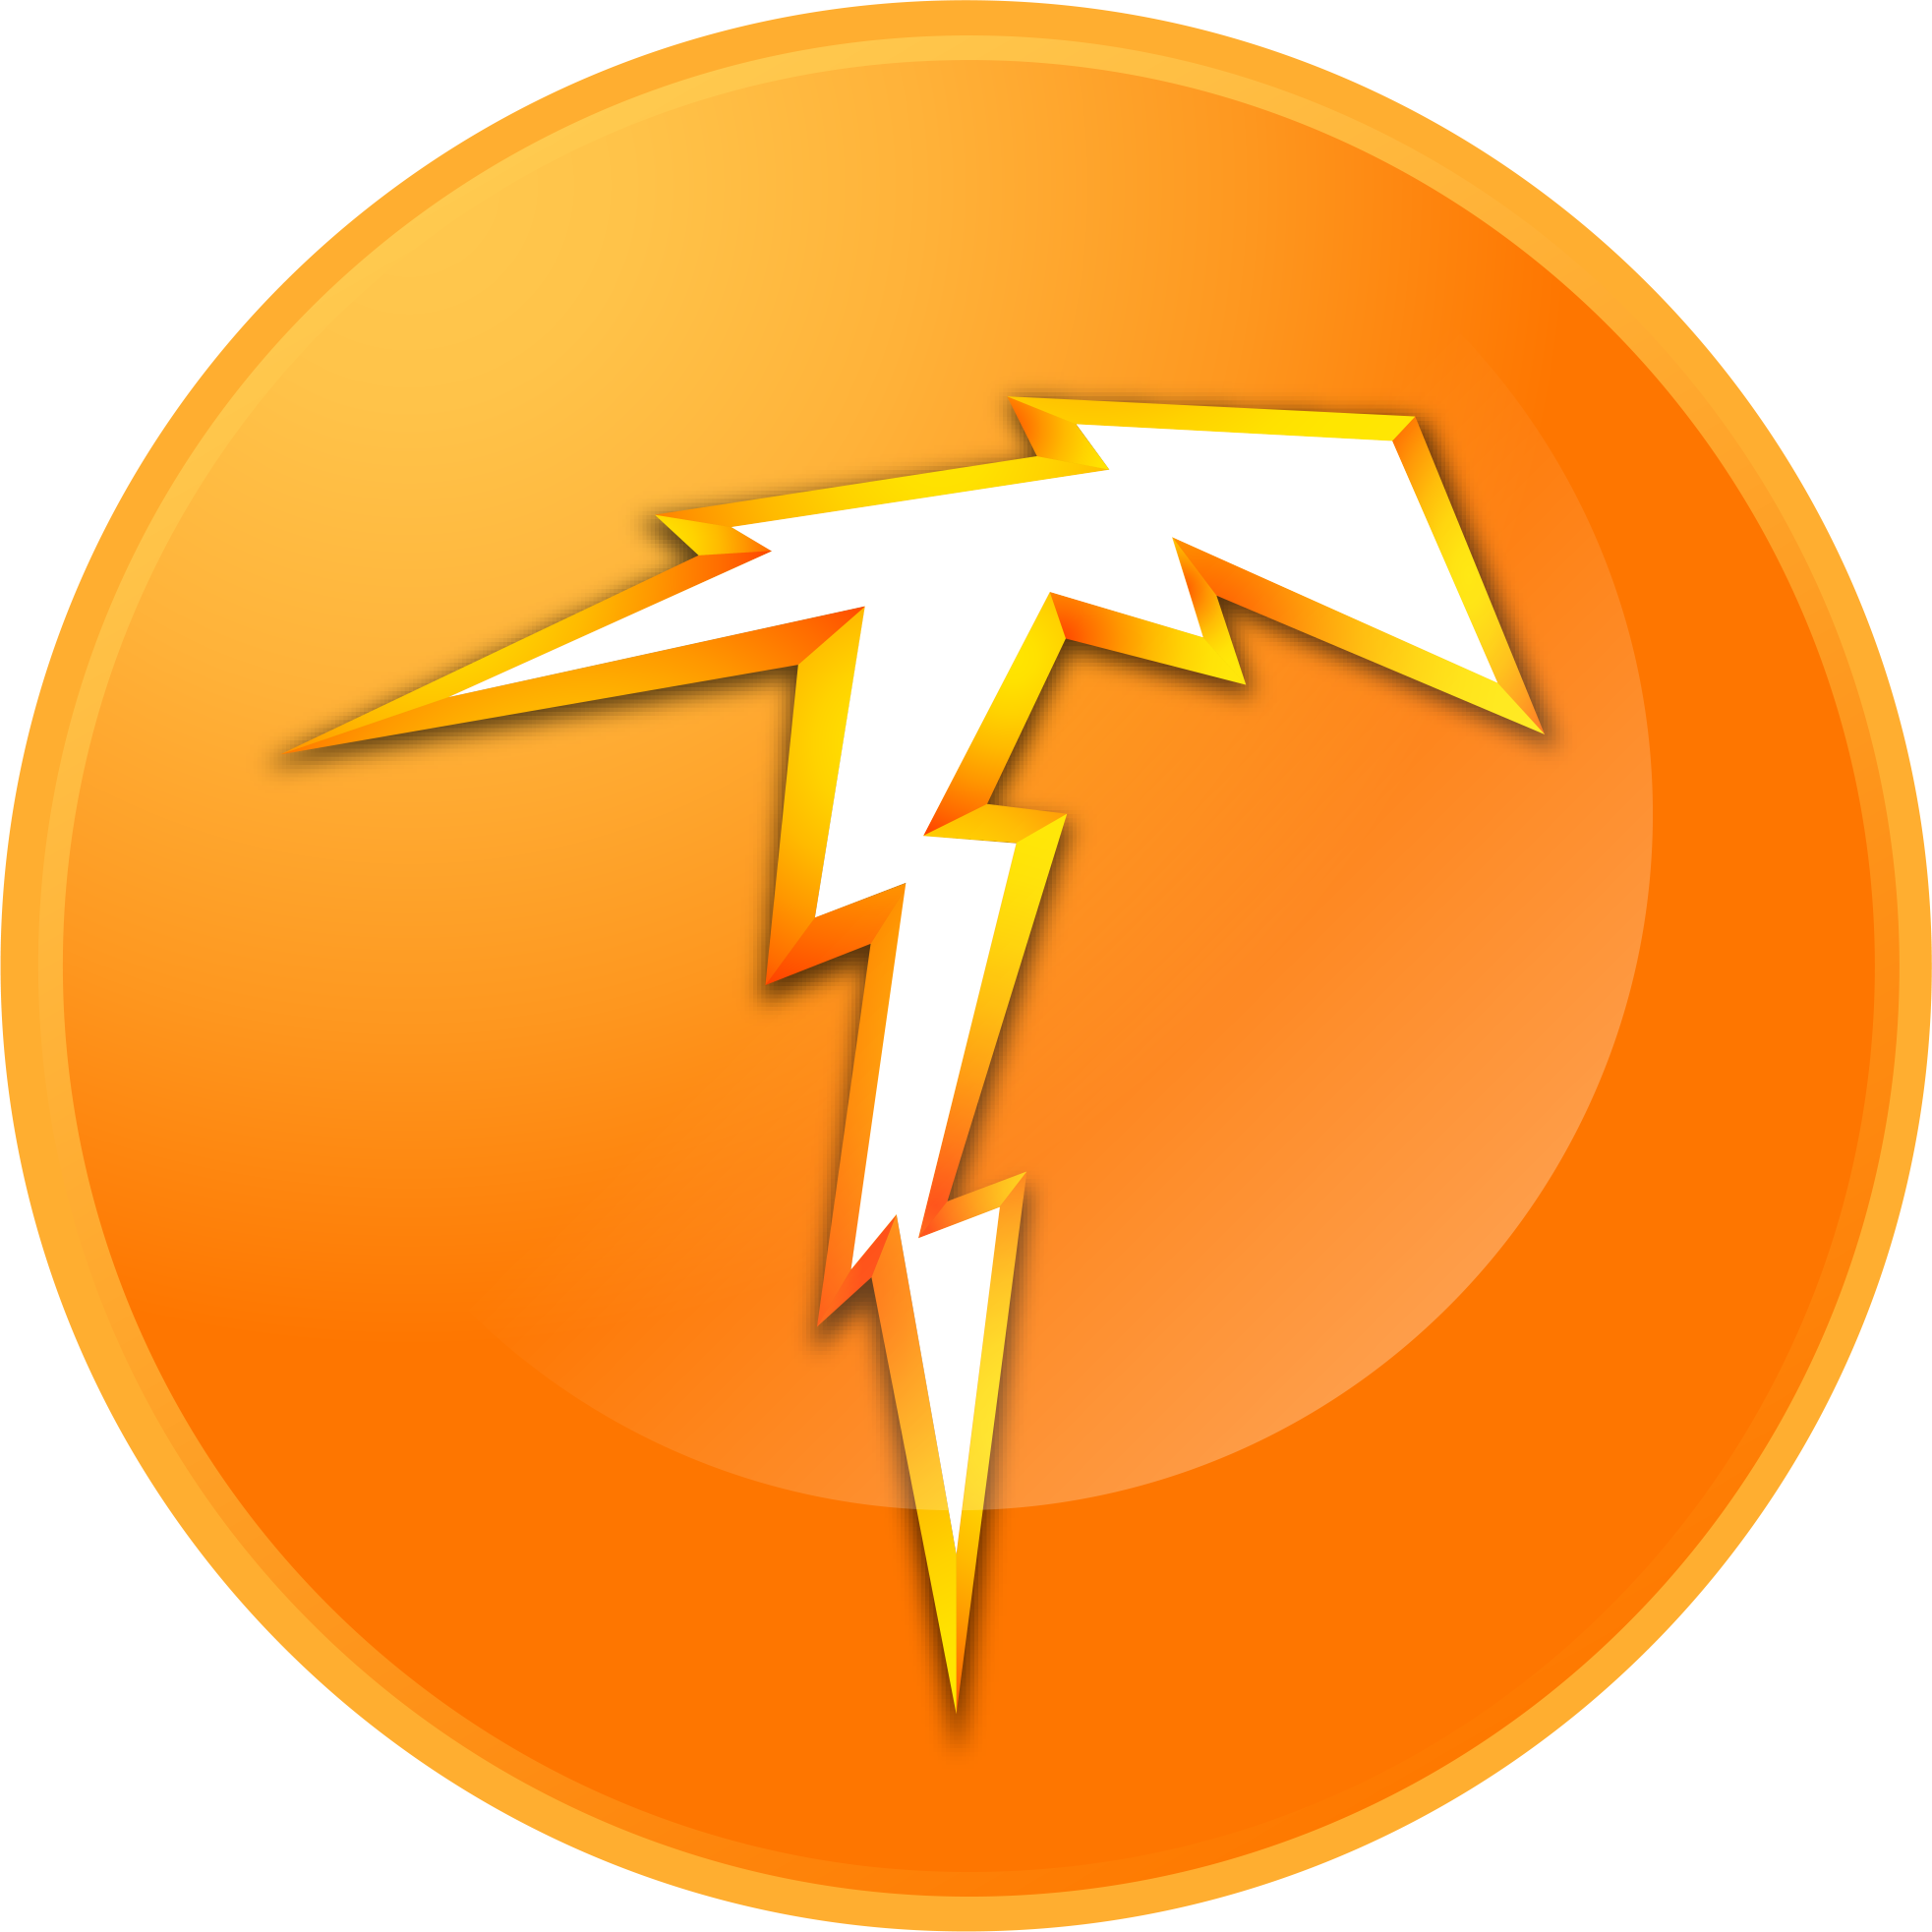 Coins clipart coin uk. Teslacoin decentralized digital curency